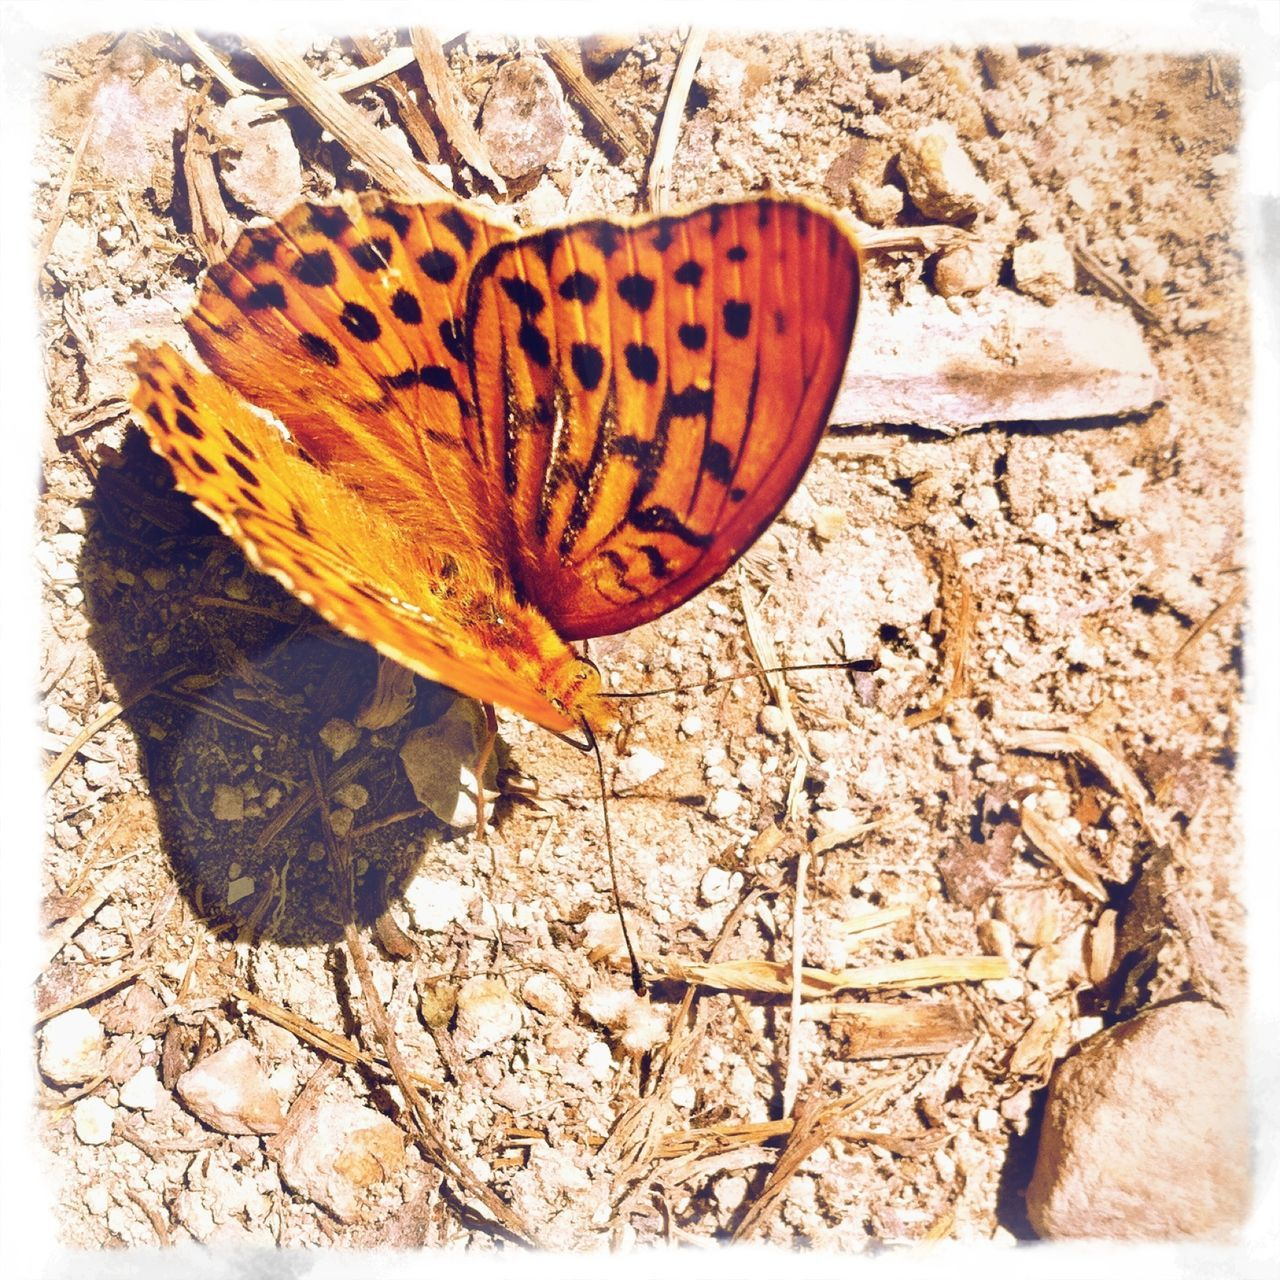 insect, one animal, butterfly, animal themes, animals in the wild, nature, butterfly - insect, wildlife, leaf, no people, change, close-up, outdoors, day, fragility, animal markings, beauty in nature, flower head